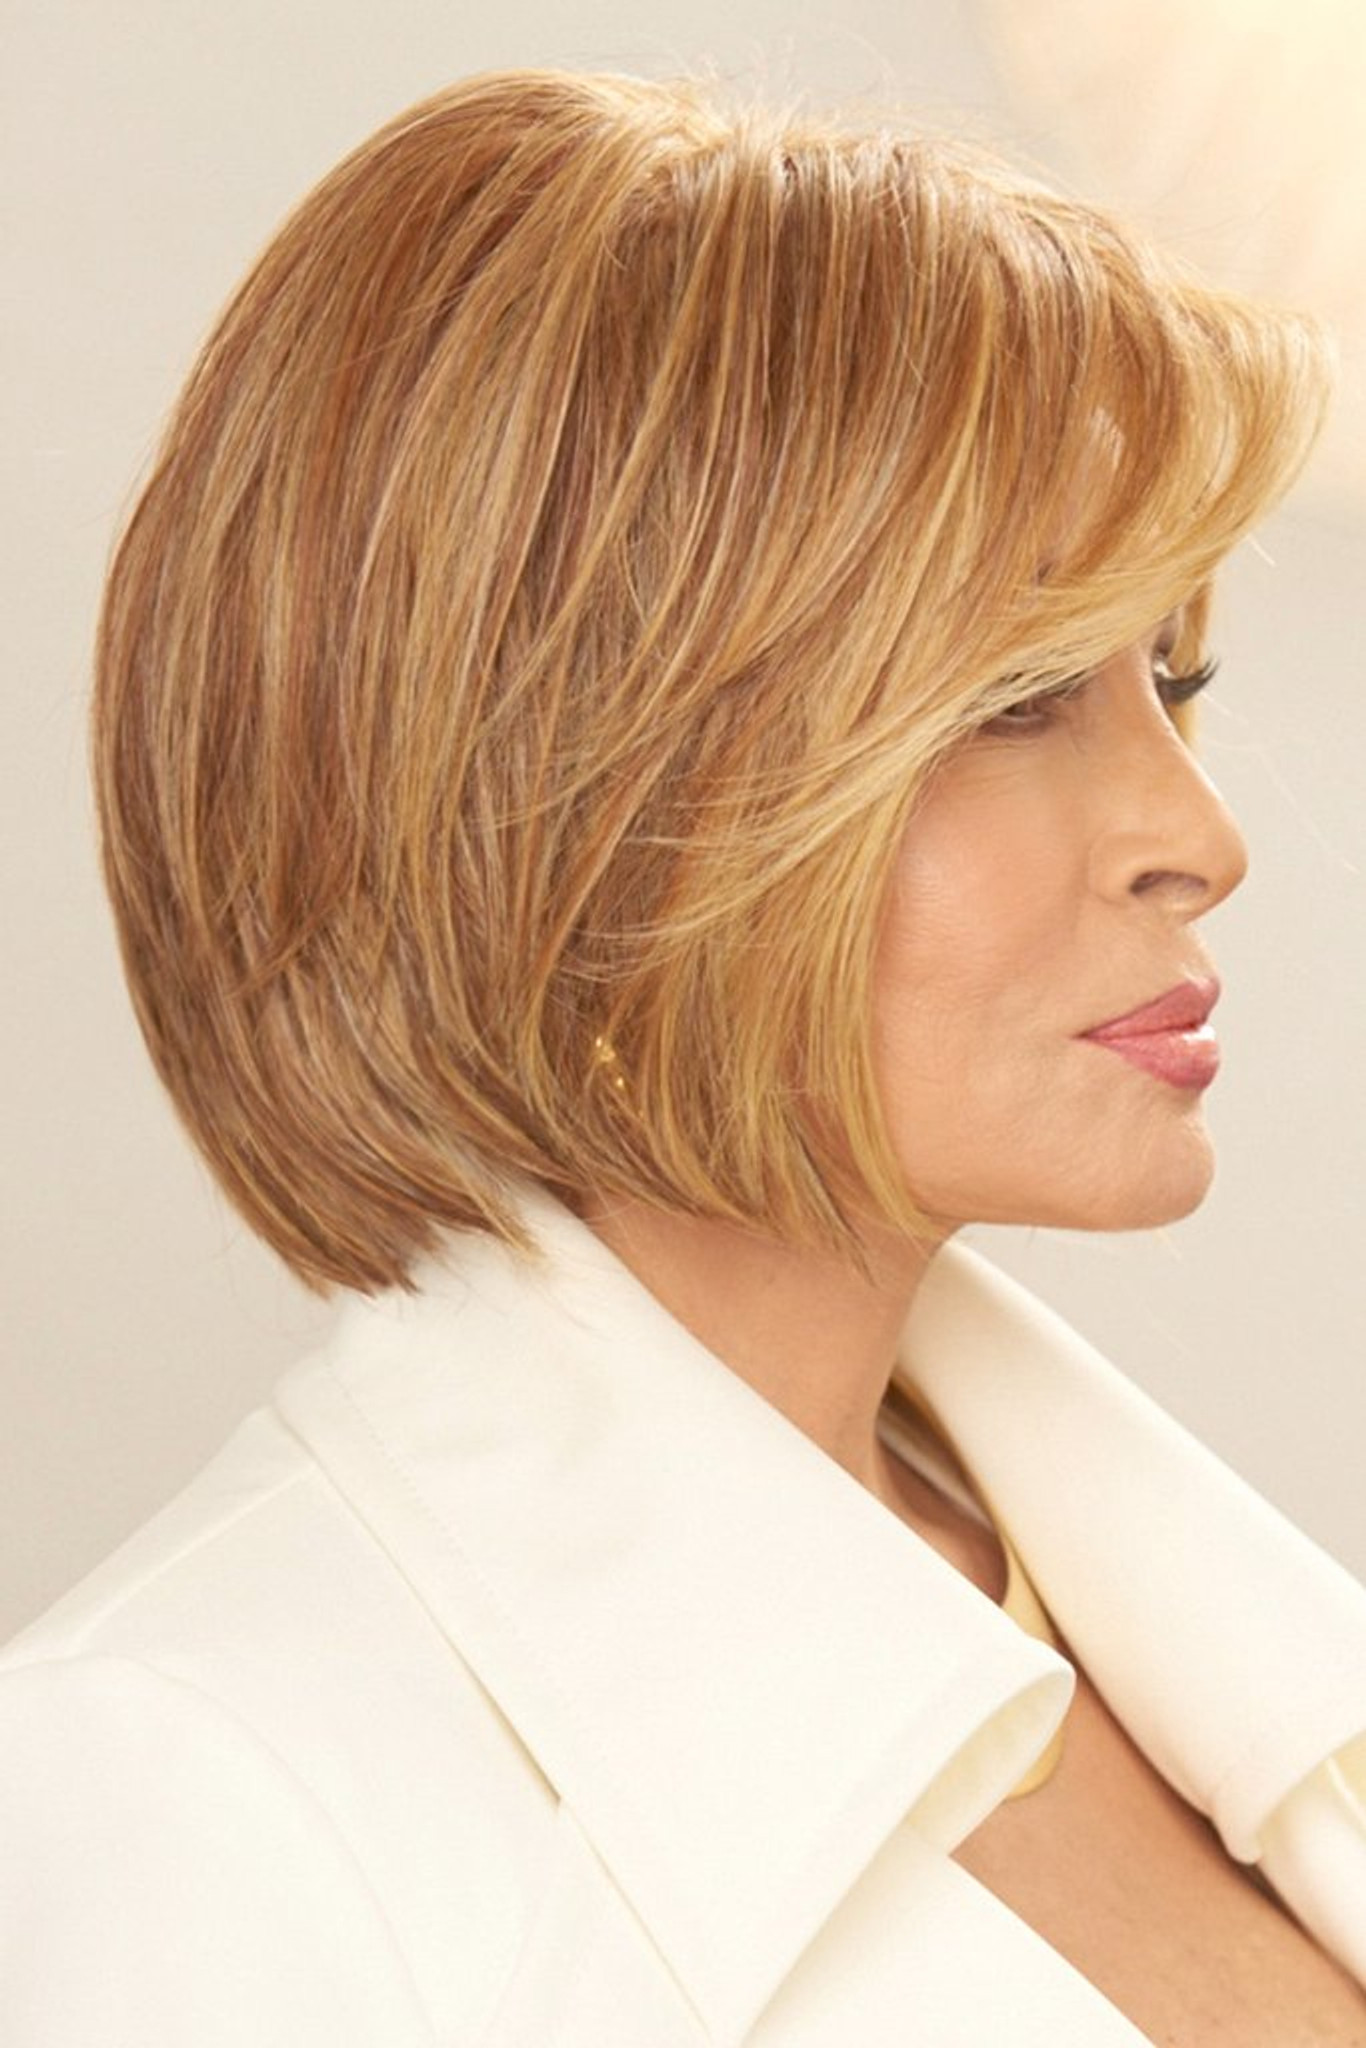 Straight Up with a Twist Raquel Welch Wigs Right Side View